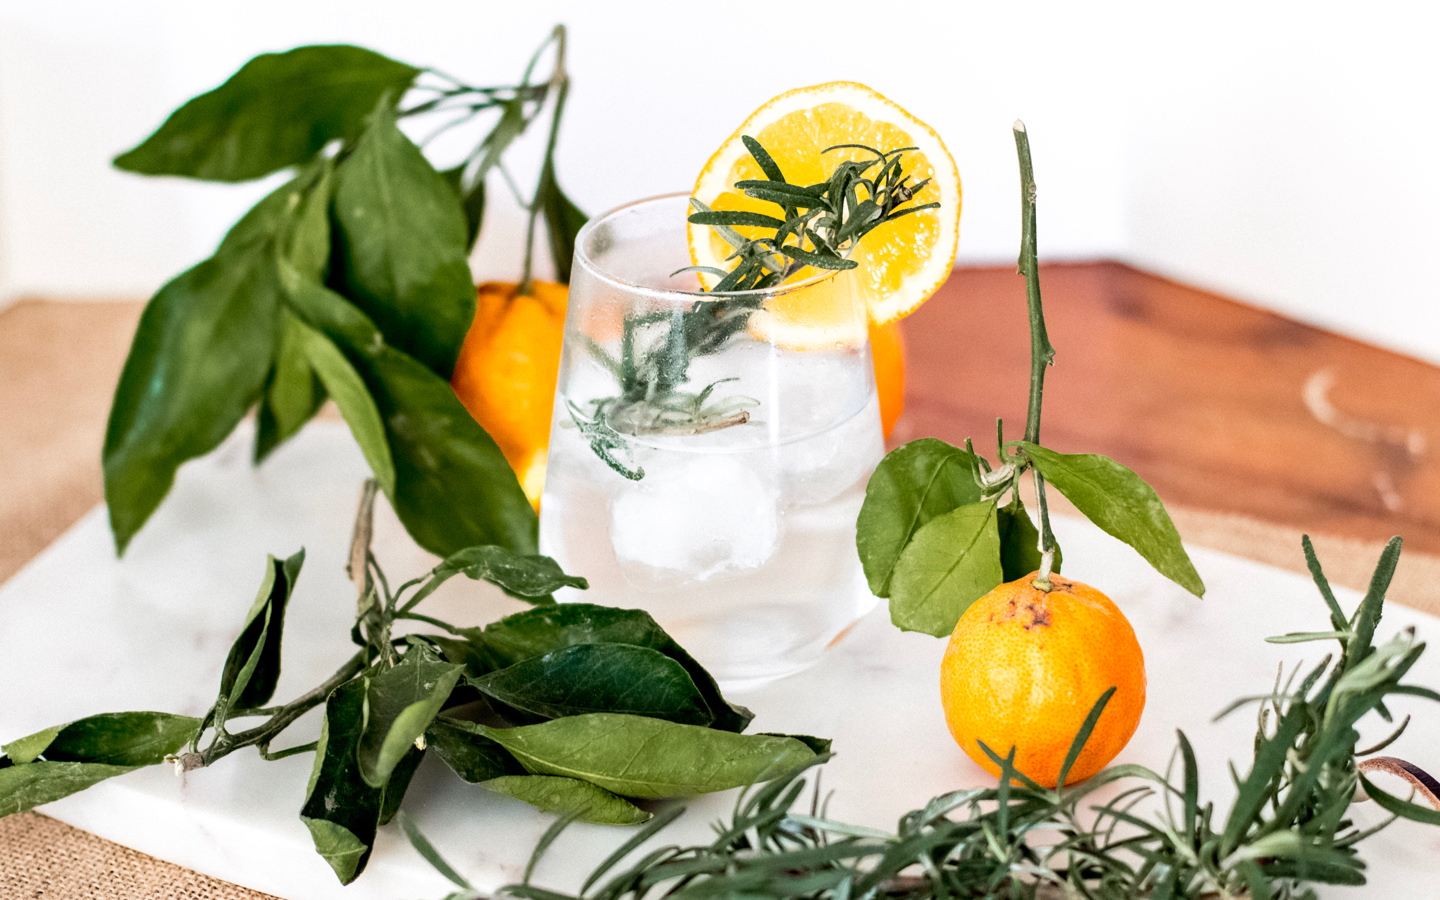 Better-For-You Booze: From Biodynamic Wine to a Clean Tequila Cocktail